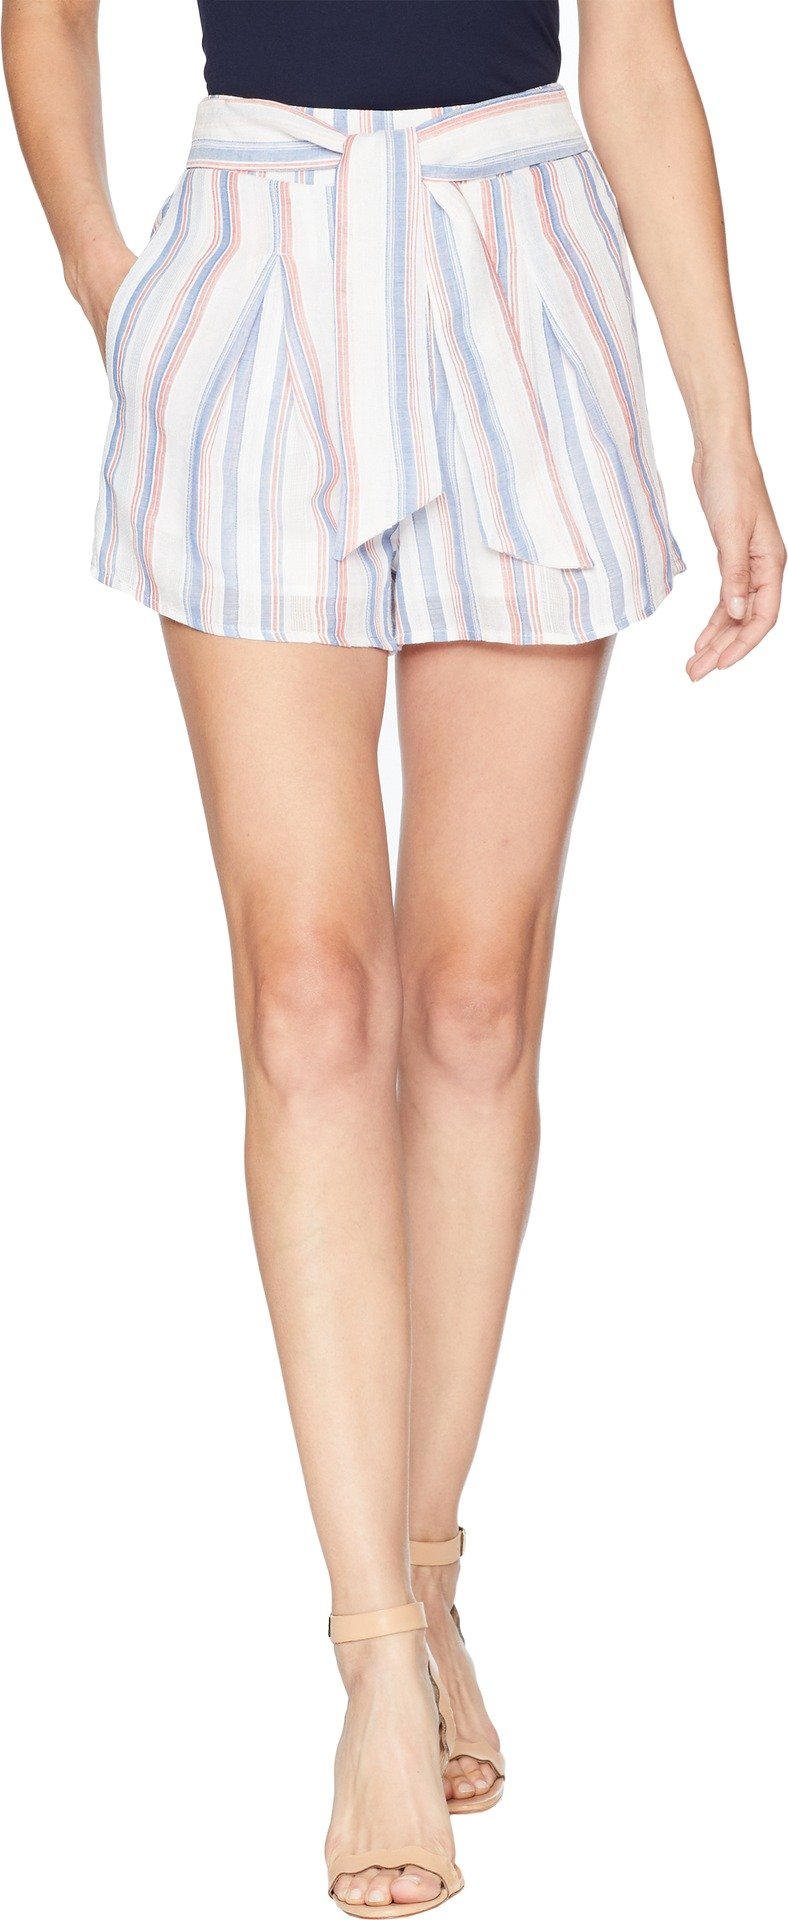 JOA Women's Pleated Elastic Striped Shorts with Waist Tie, Red/Sky Stripe, s